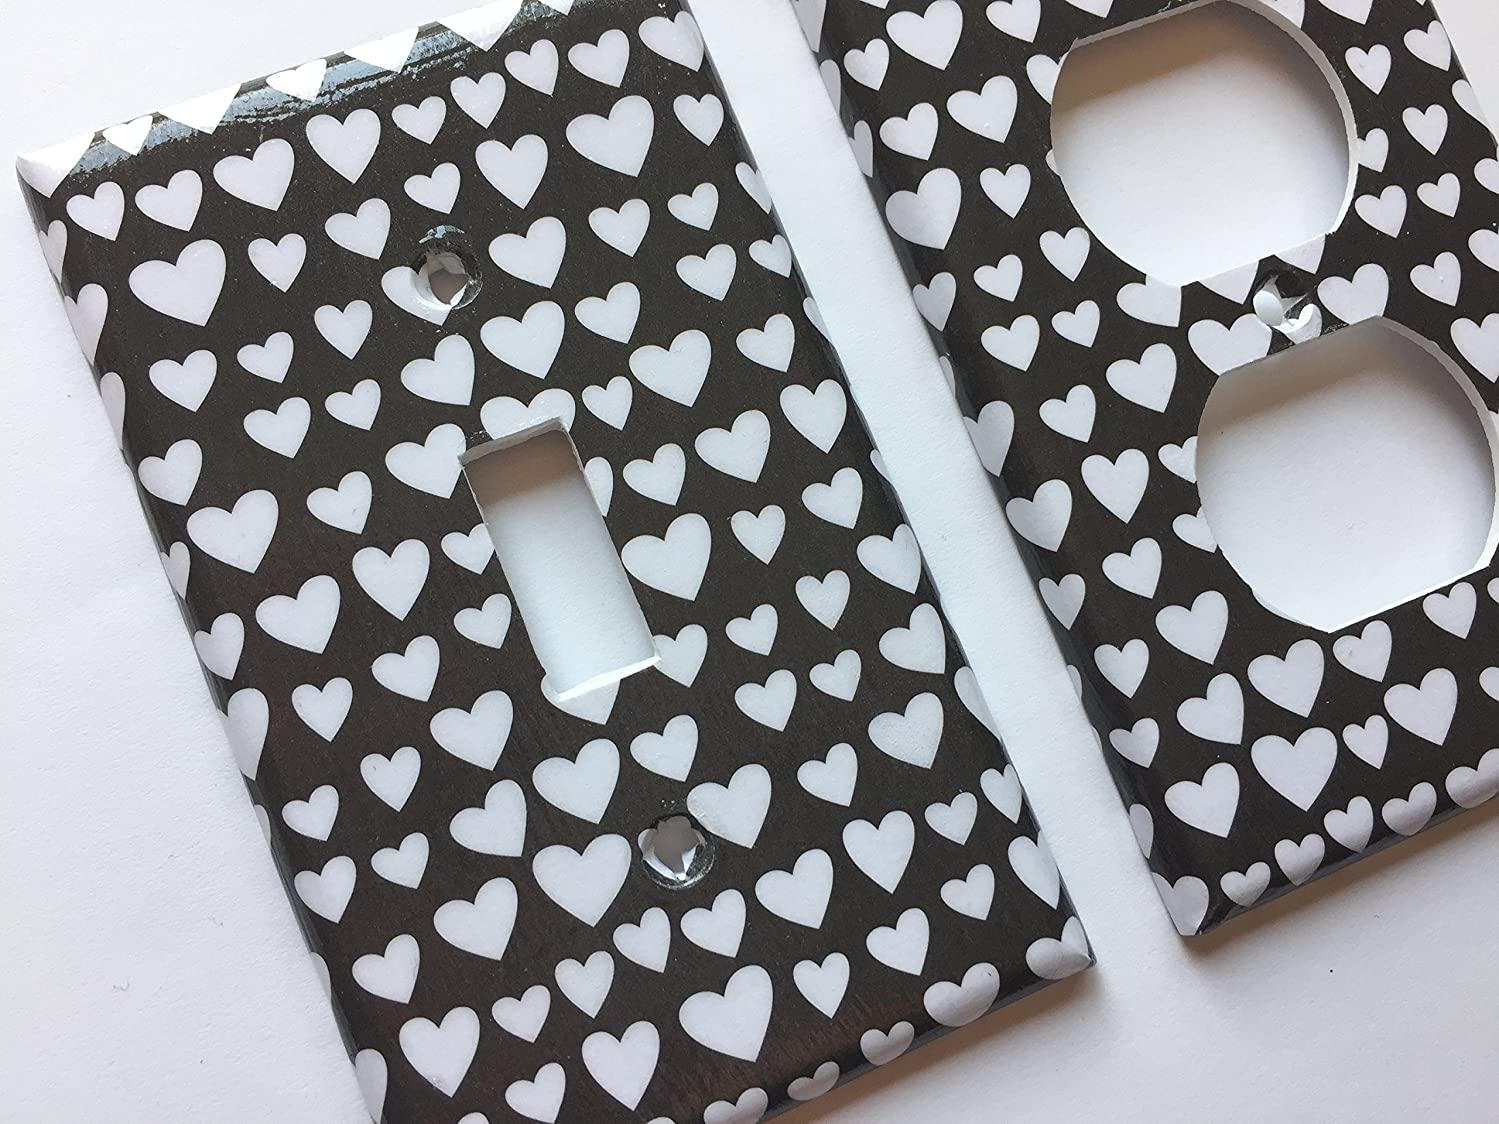 Black And Whie Hearts Light Switch Cover -Various Sizes Offered